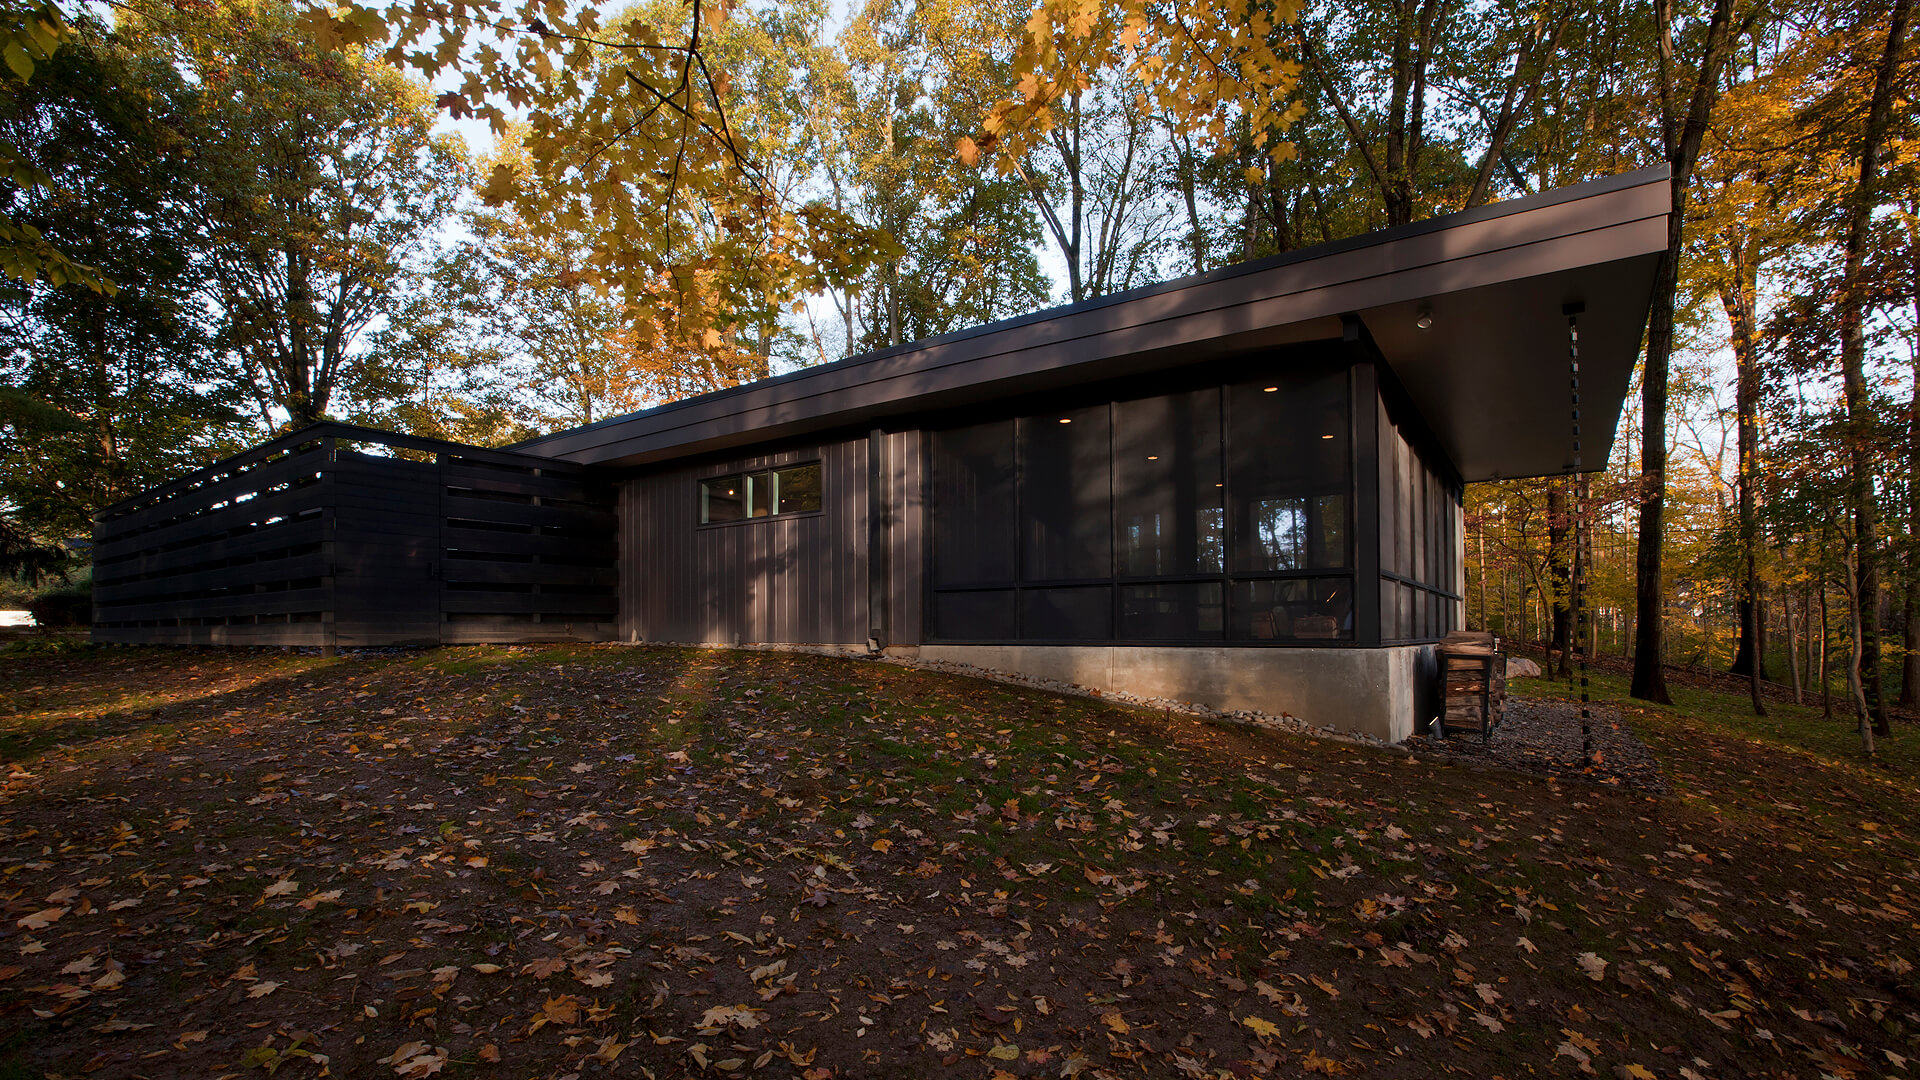 Screened Porch, wooded site, rainchains, privacy wall, privacy fence, cantilever flat roof, moss garden, sloping site, mid mod - Midcentury Modern Renovation - 81st Street - Indianapolis, Christopher Short, Architect, HAUS Architecture